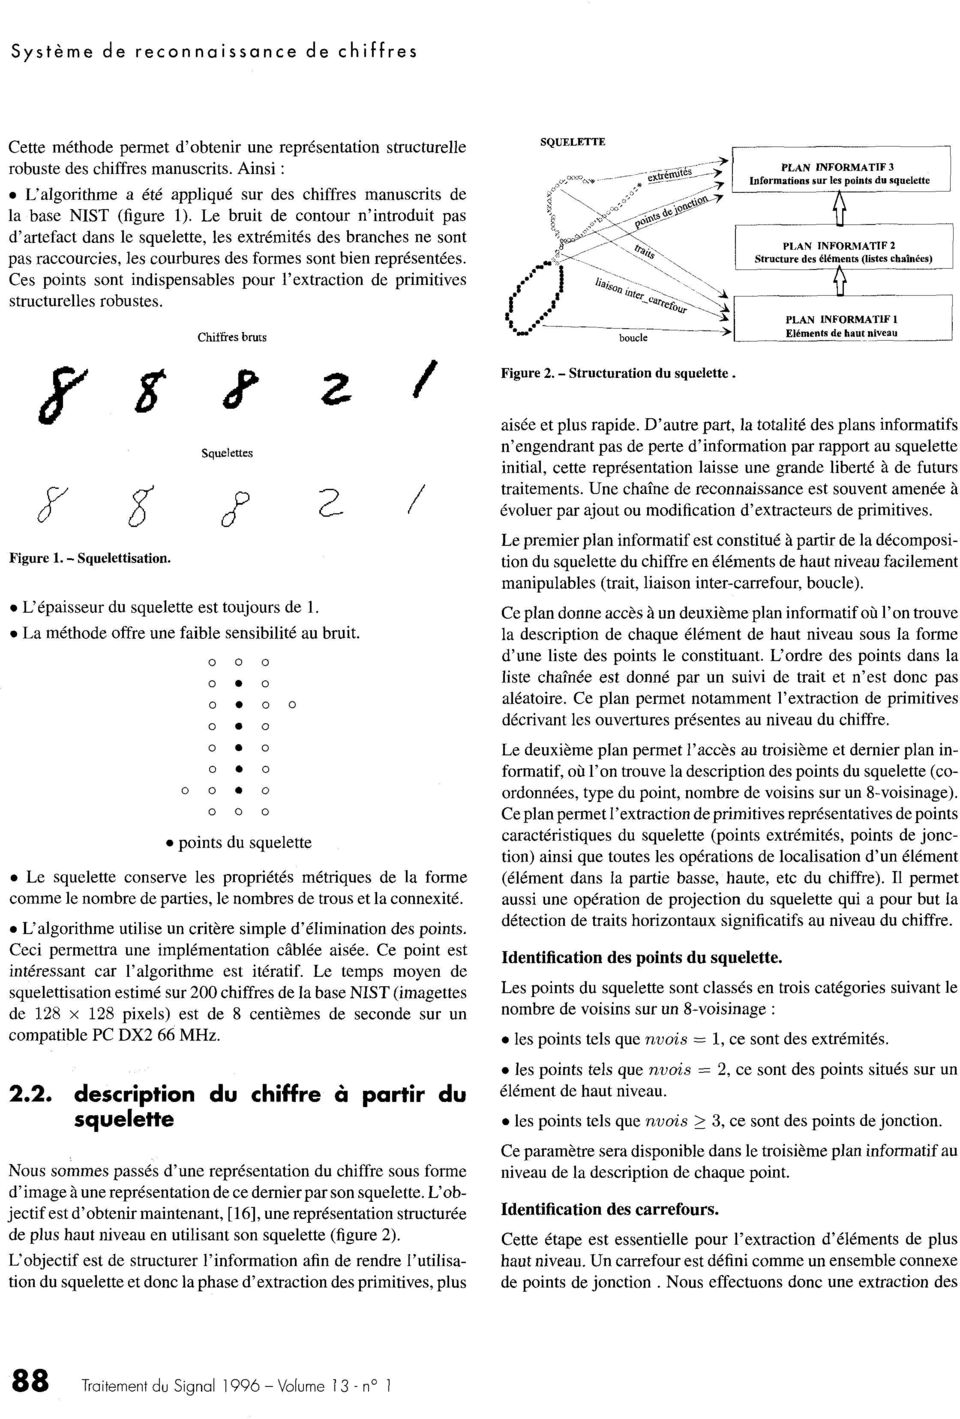 Ces points sont indispensables pour l'extraction de primitive s structurelles robustes.